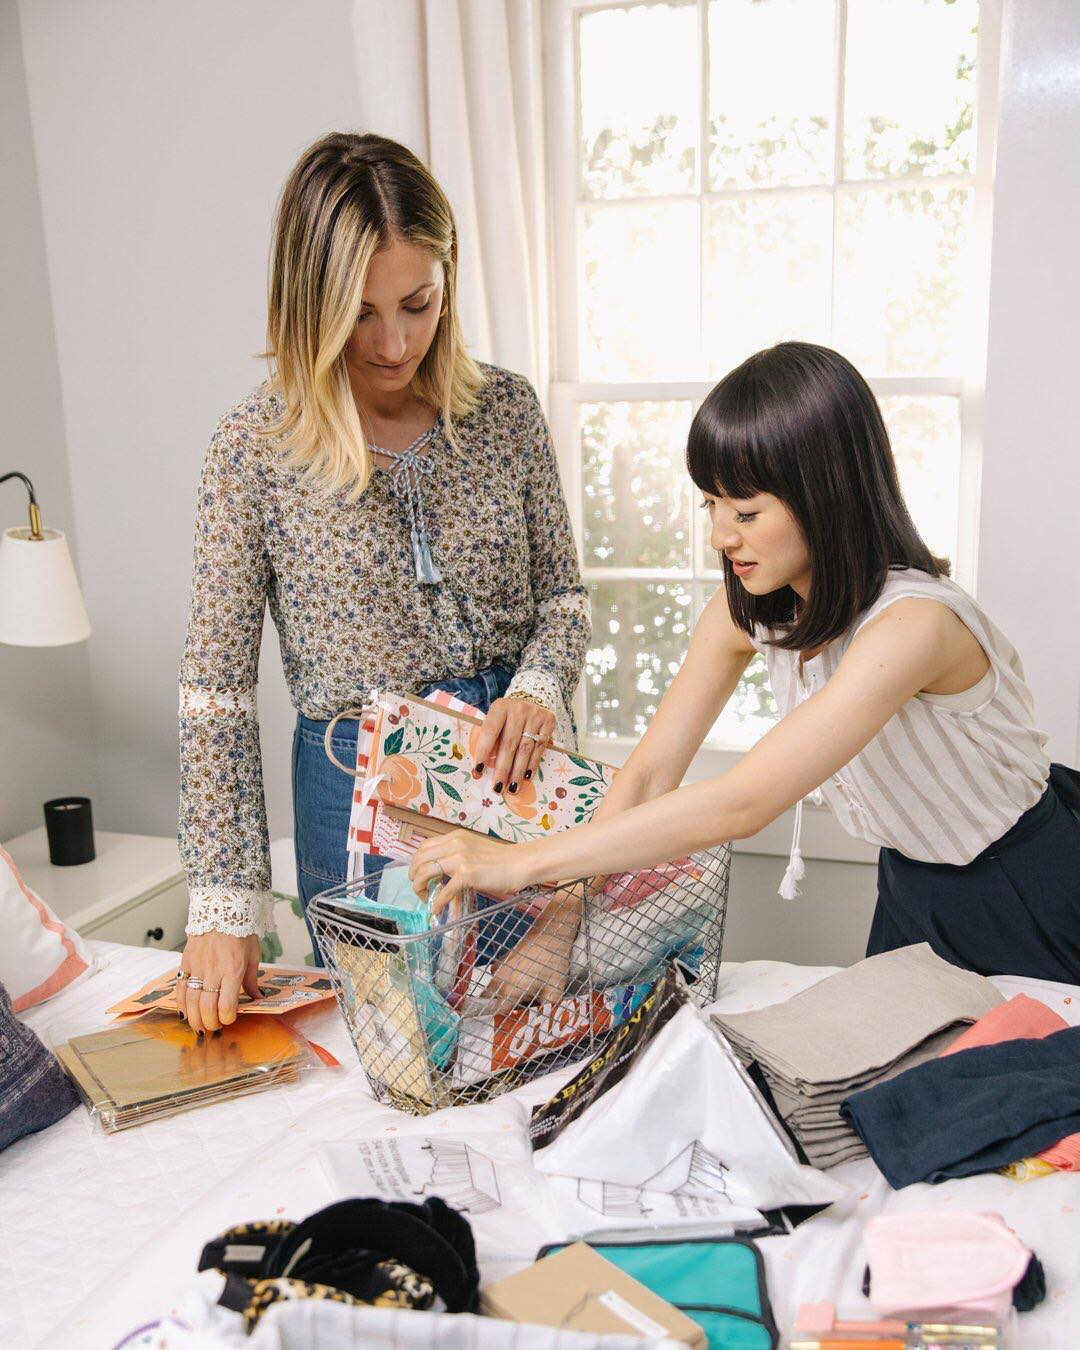 What You Can Learn From Organizing Queen Marie Kondo